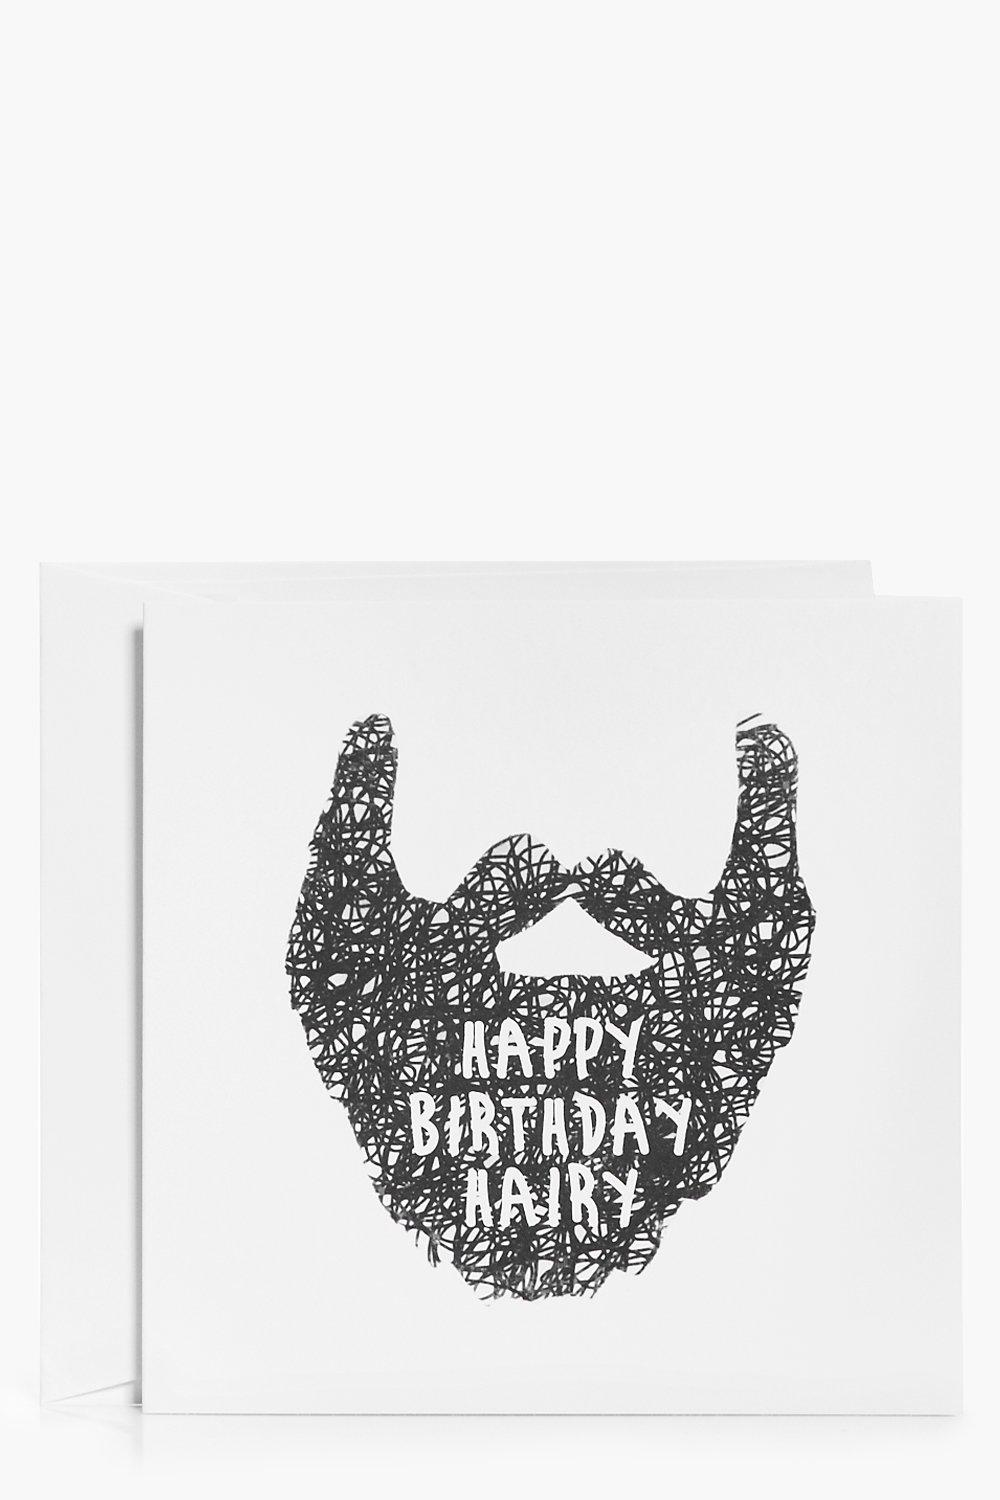 Image of Birthday Beard Birthday Card - white